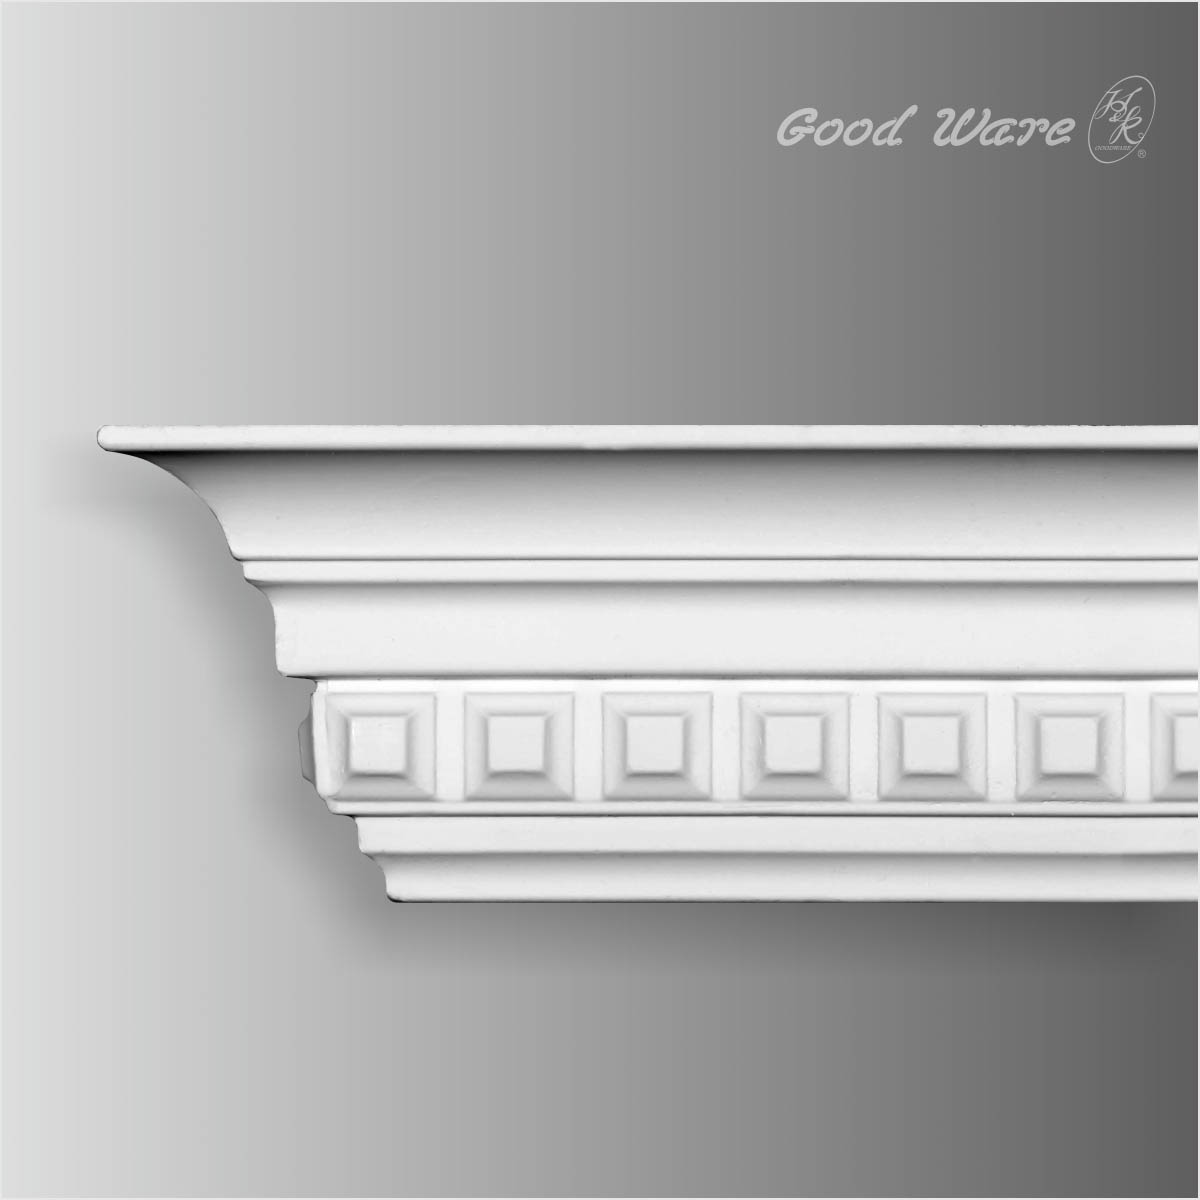 Smaill dentil crown molding